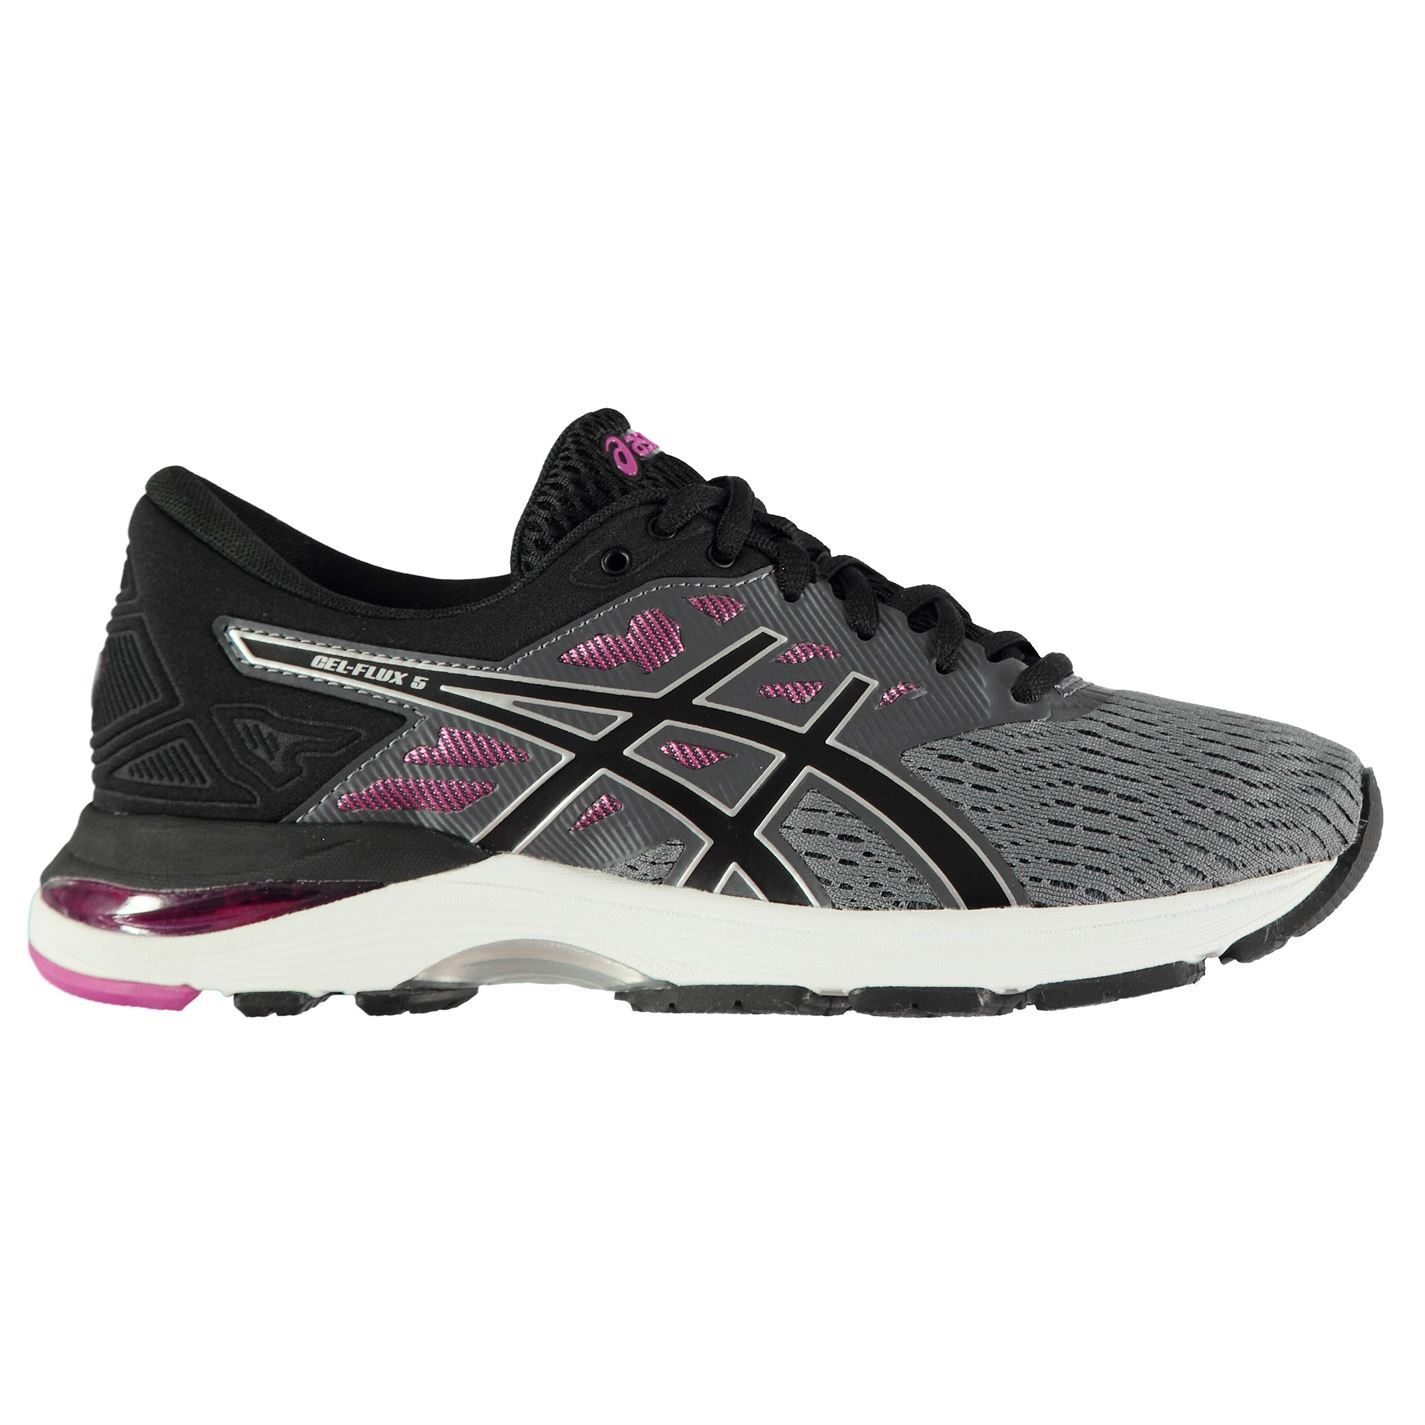 ... Asics Gel Flux 5 Running Shoes Womens Grey Black Red Jogging Trainers  Sneakers ... ef6b16bf8